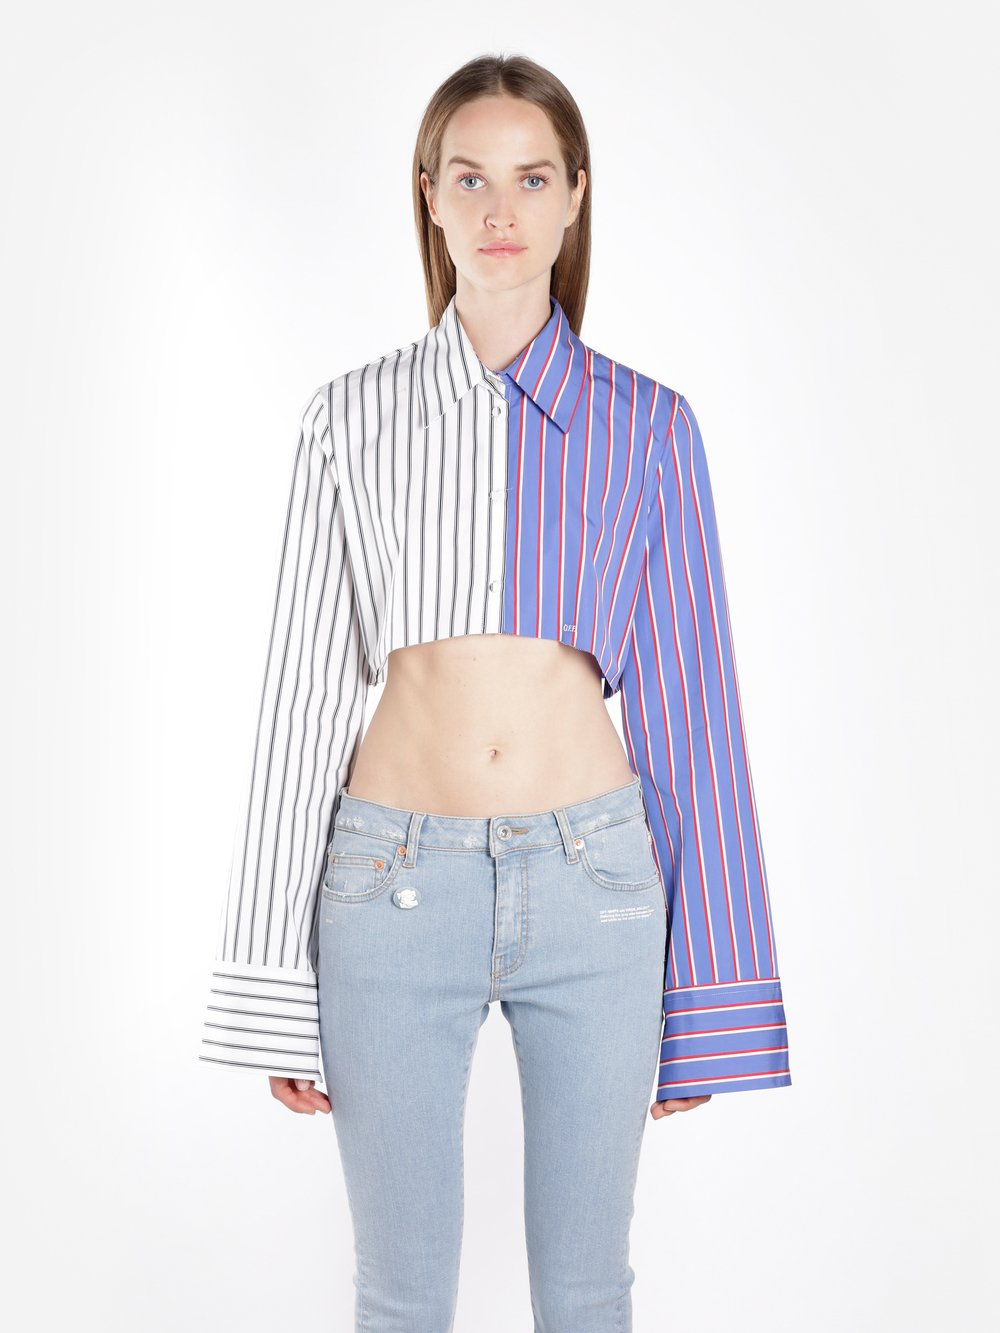 OFF WHITE C/O VIRGIL ABLOH WOMEN'S MULTICOLOR STRIPED CROPPED SHIRT